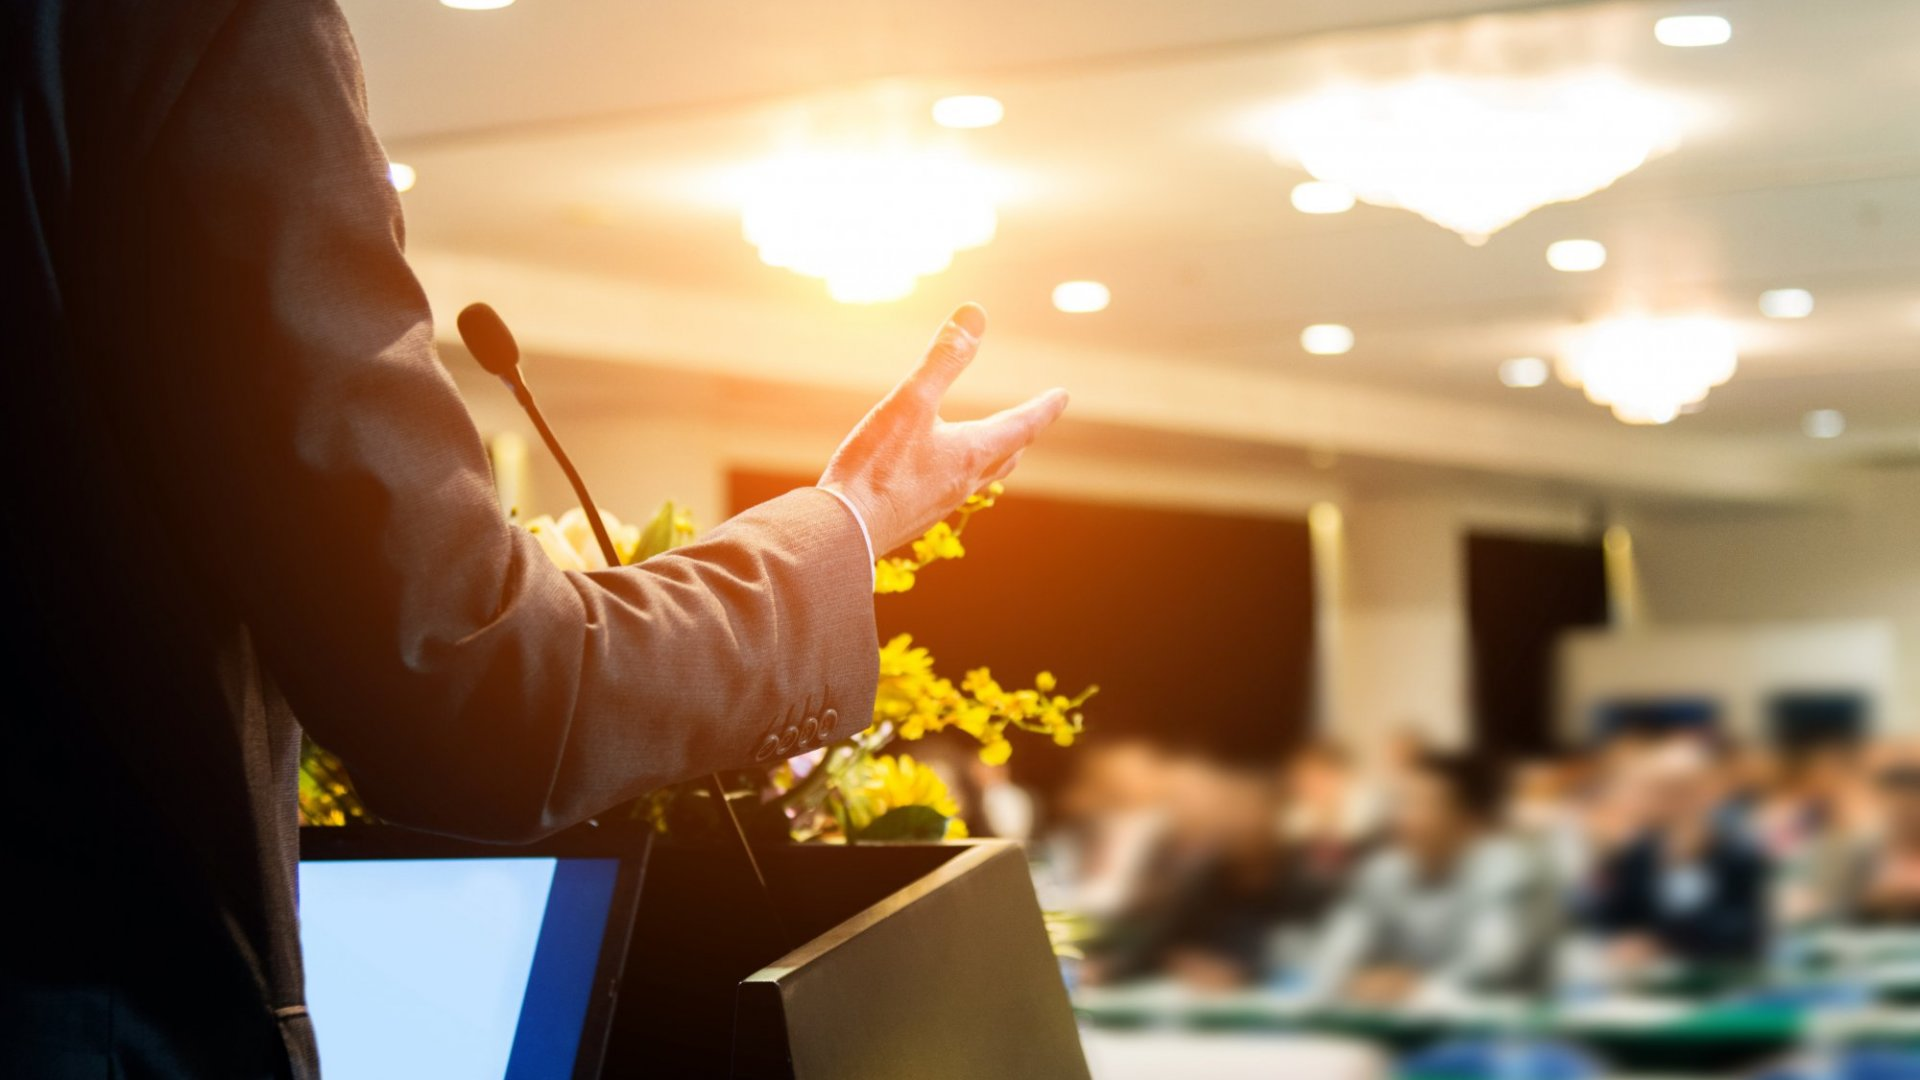 4 Steps to Overcoming Your Fears and Learning to Love Public Speaking